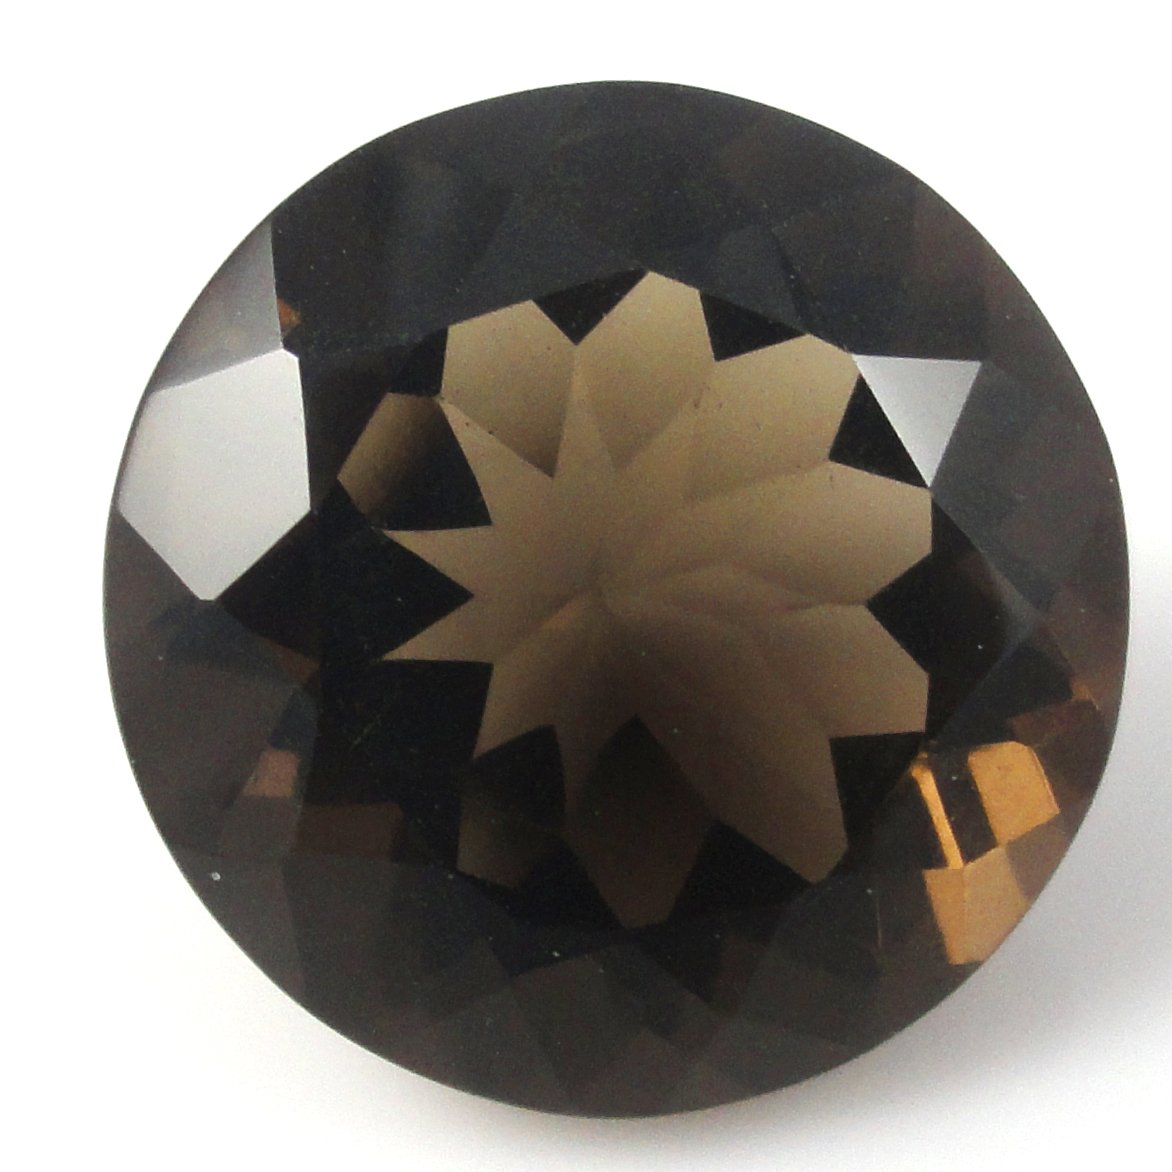 Certified Natural Smoky Quartz AAA Quality 8 mm Faceted Round 2 pcs Pair loose gemstone